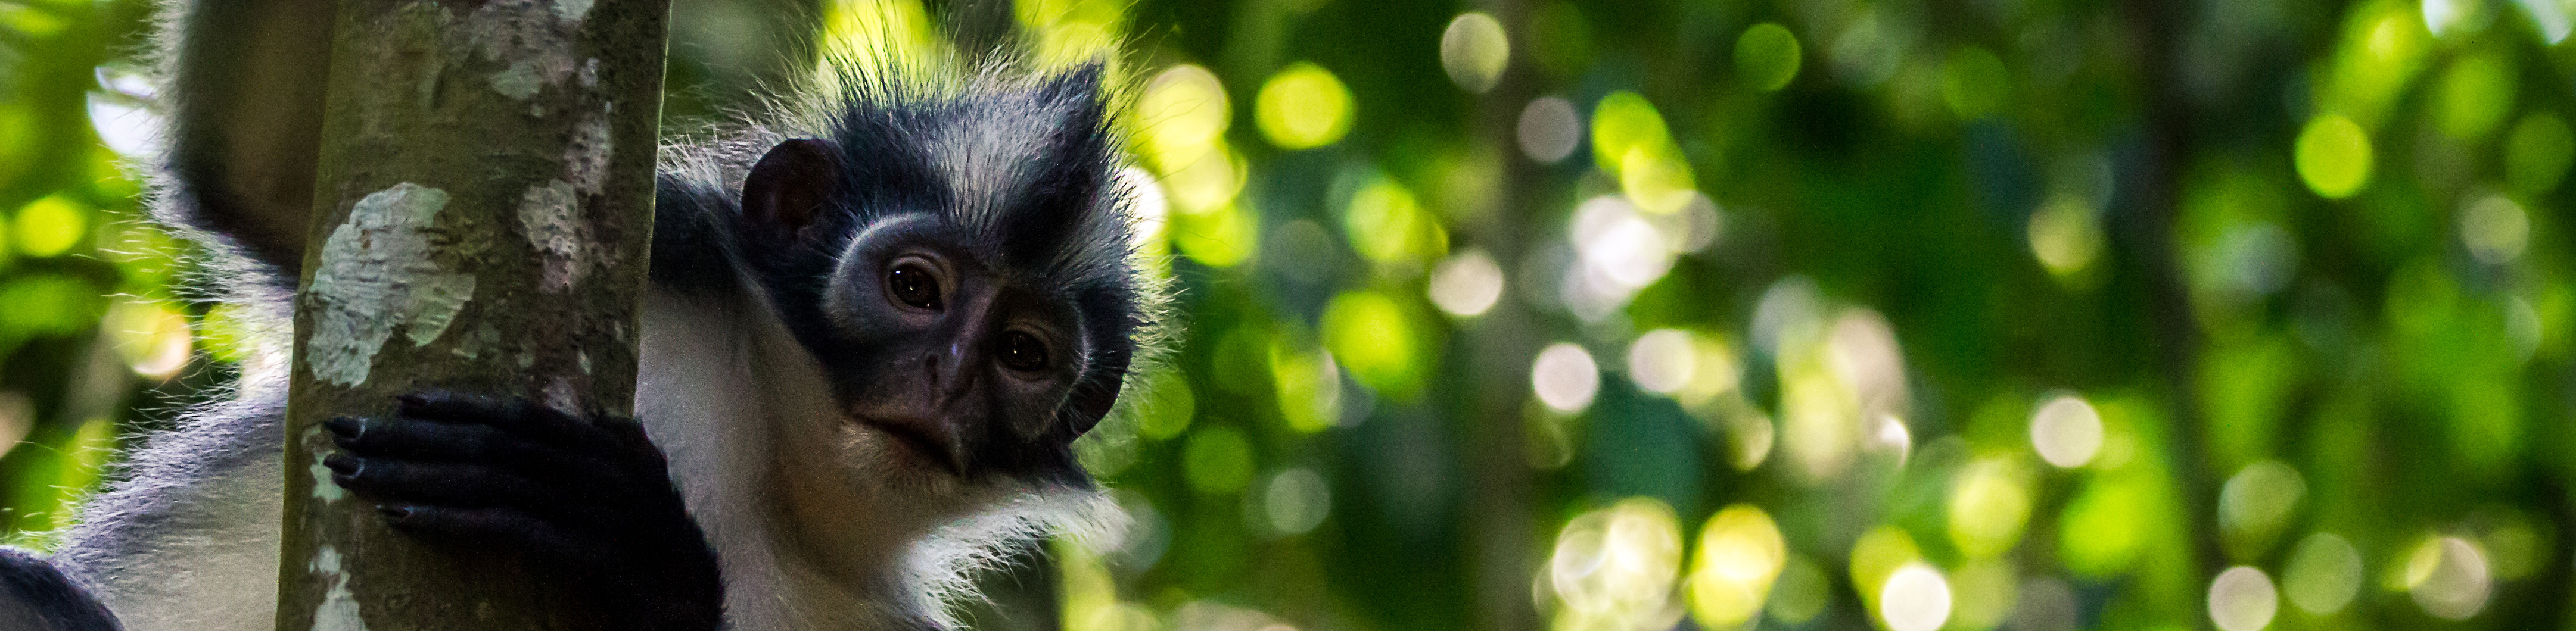 Thomas leaf monkey on a tree in Sumatra, Indonesia